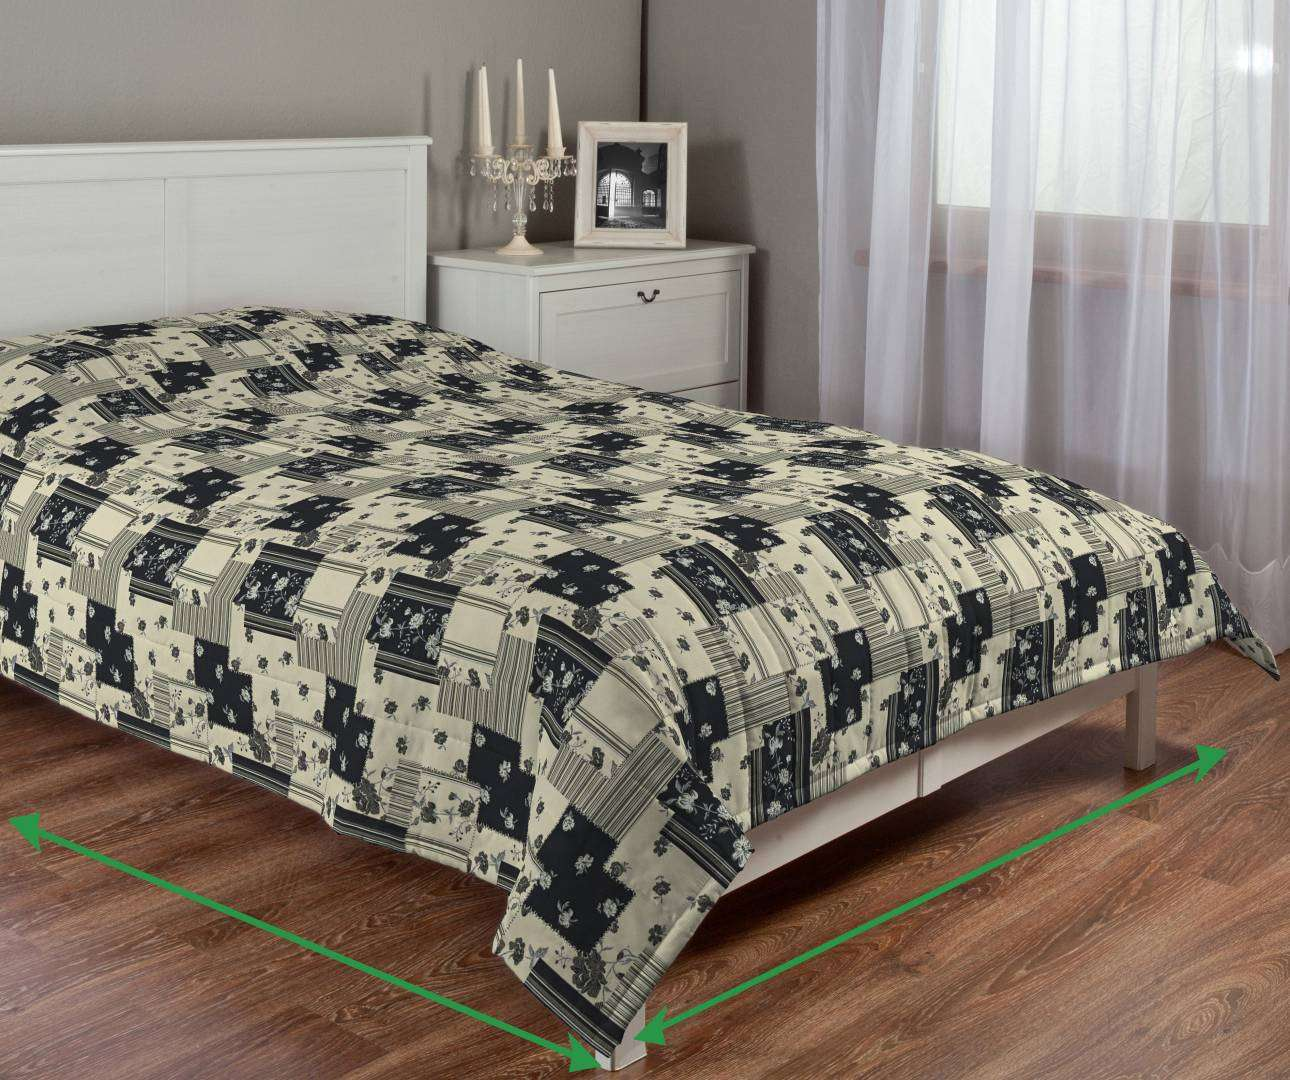 Quilted throw (vertical quilt pattern) in collection SALE, fabric: 120-07